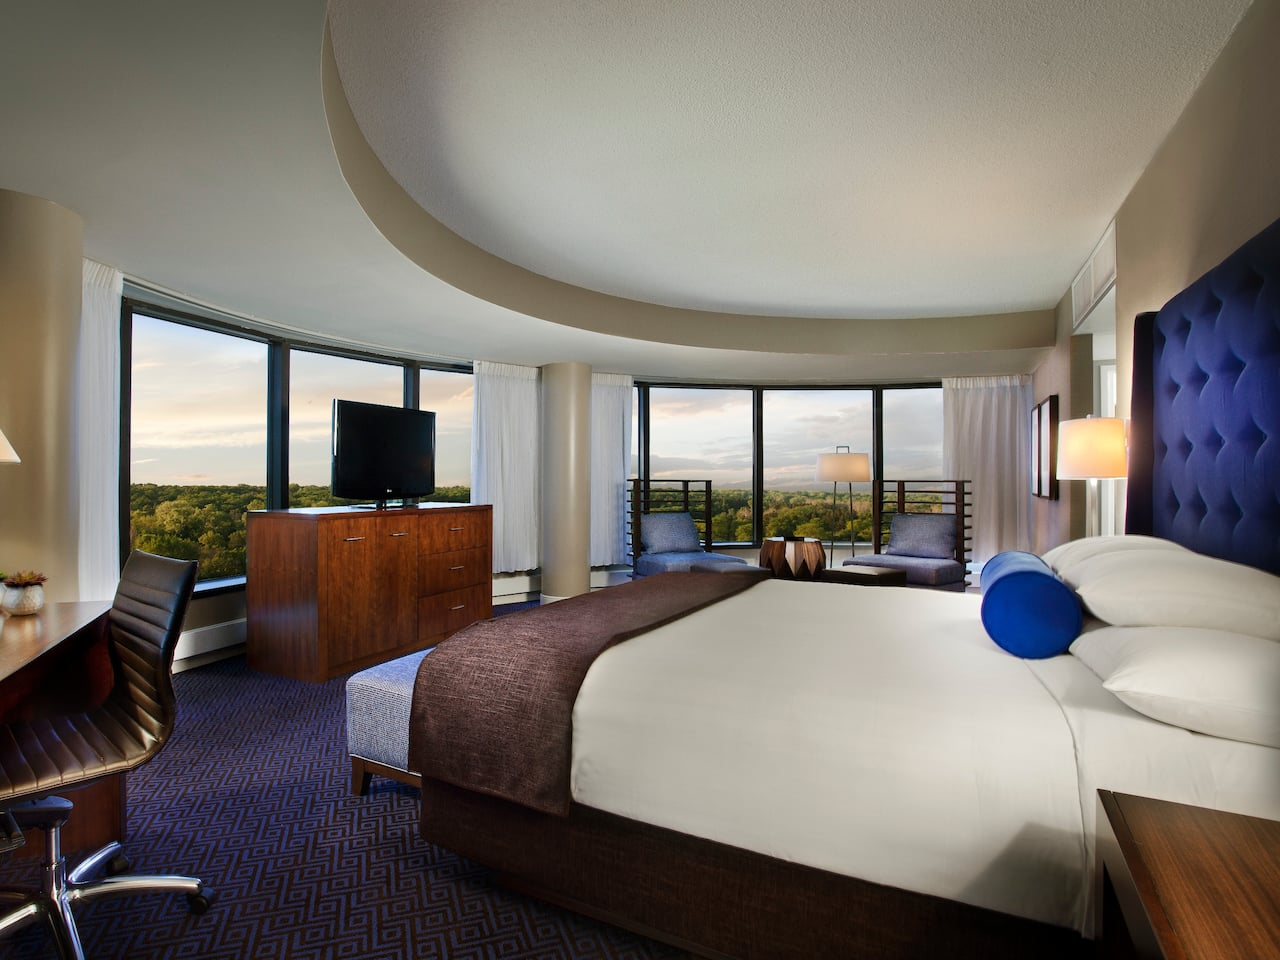 King room with panoramic views